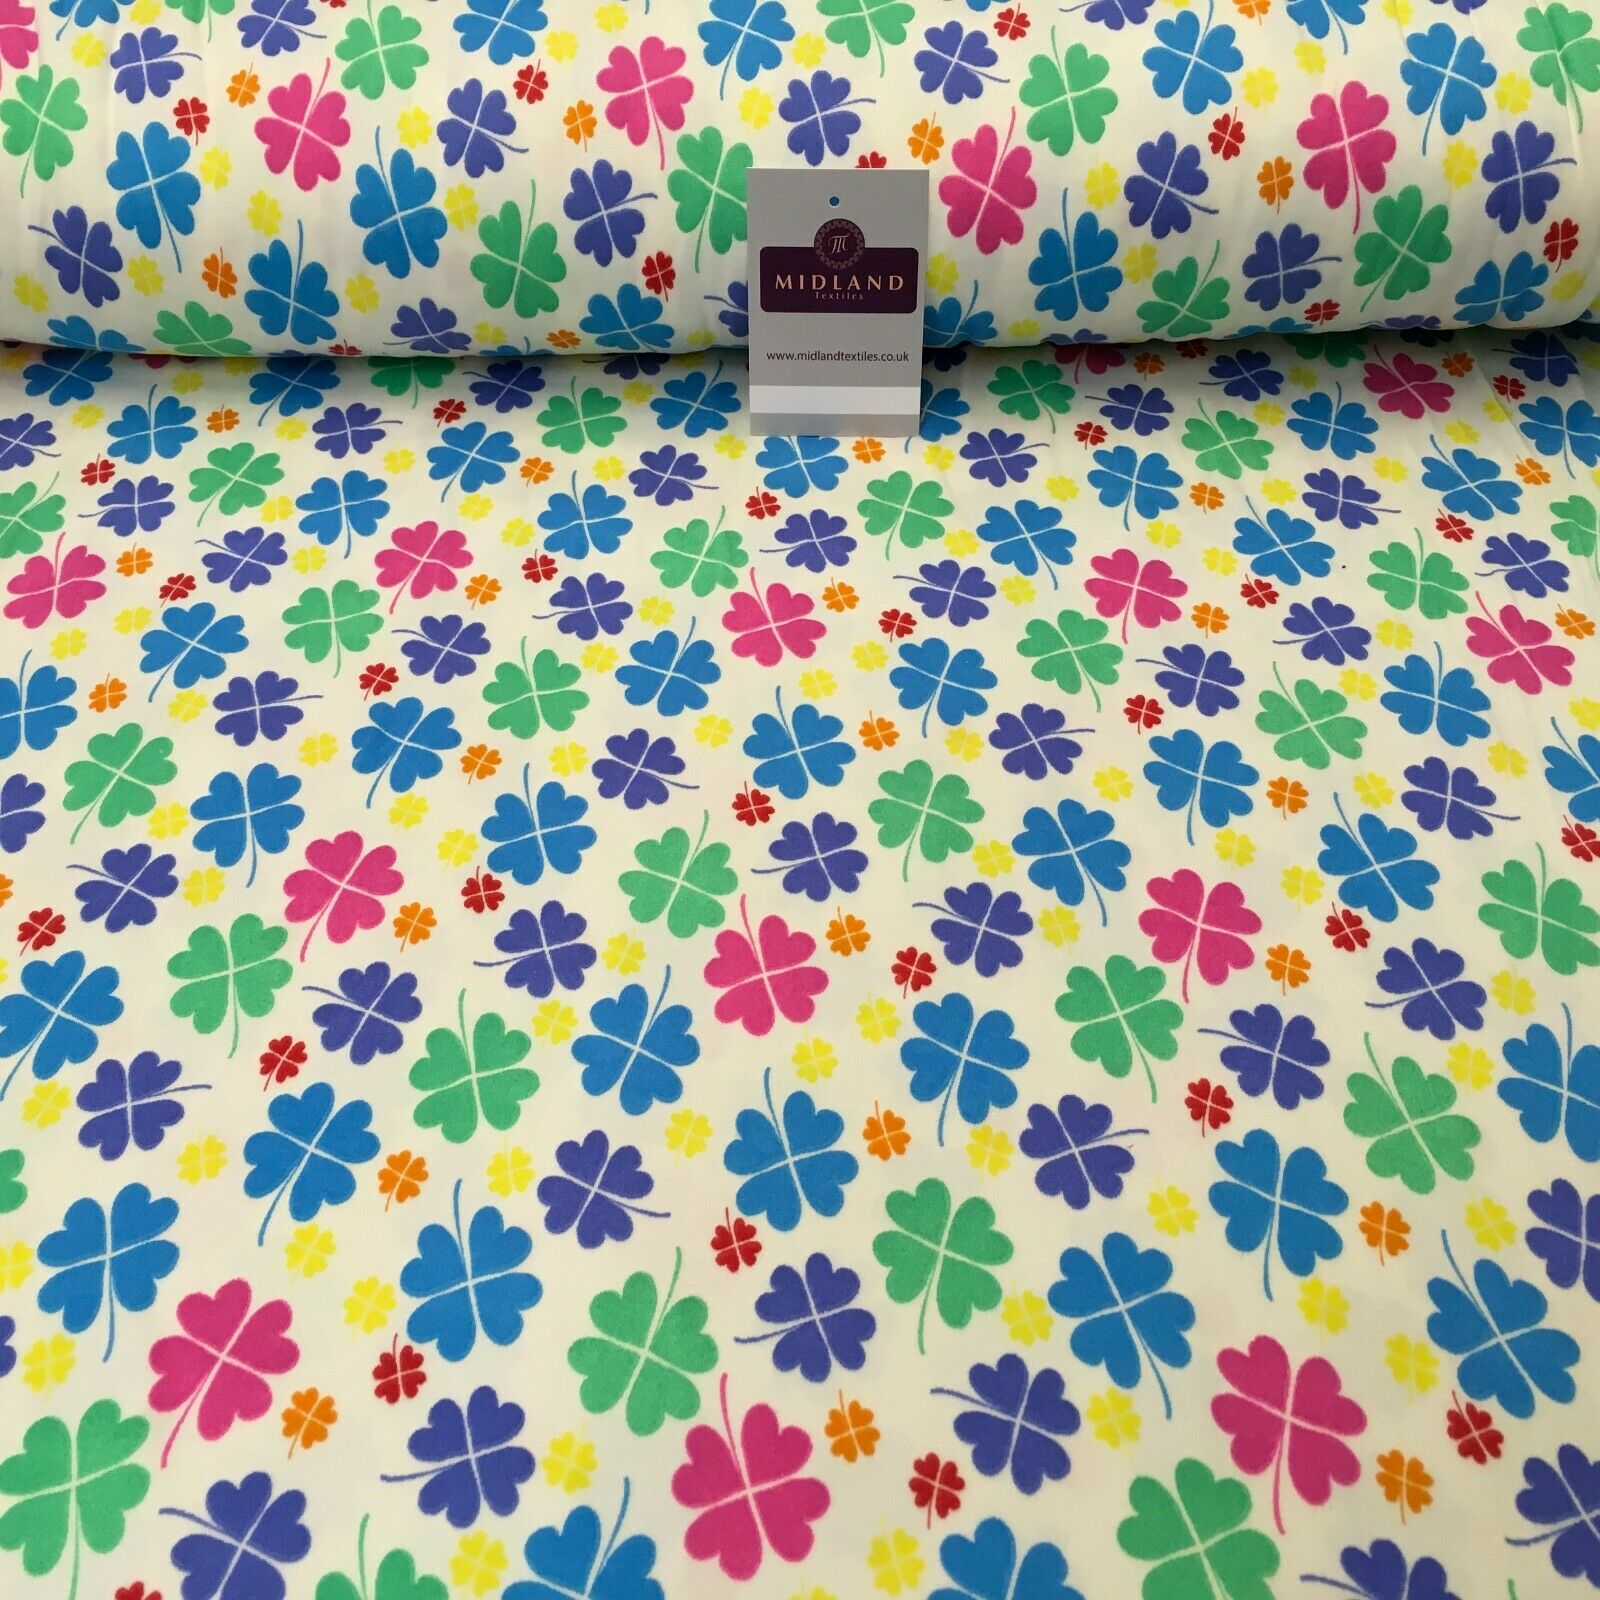 Cream Clover Leaf Printed Brushed Jersey Dress fabric 150cm Wide MK1106-3 Mtex